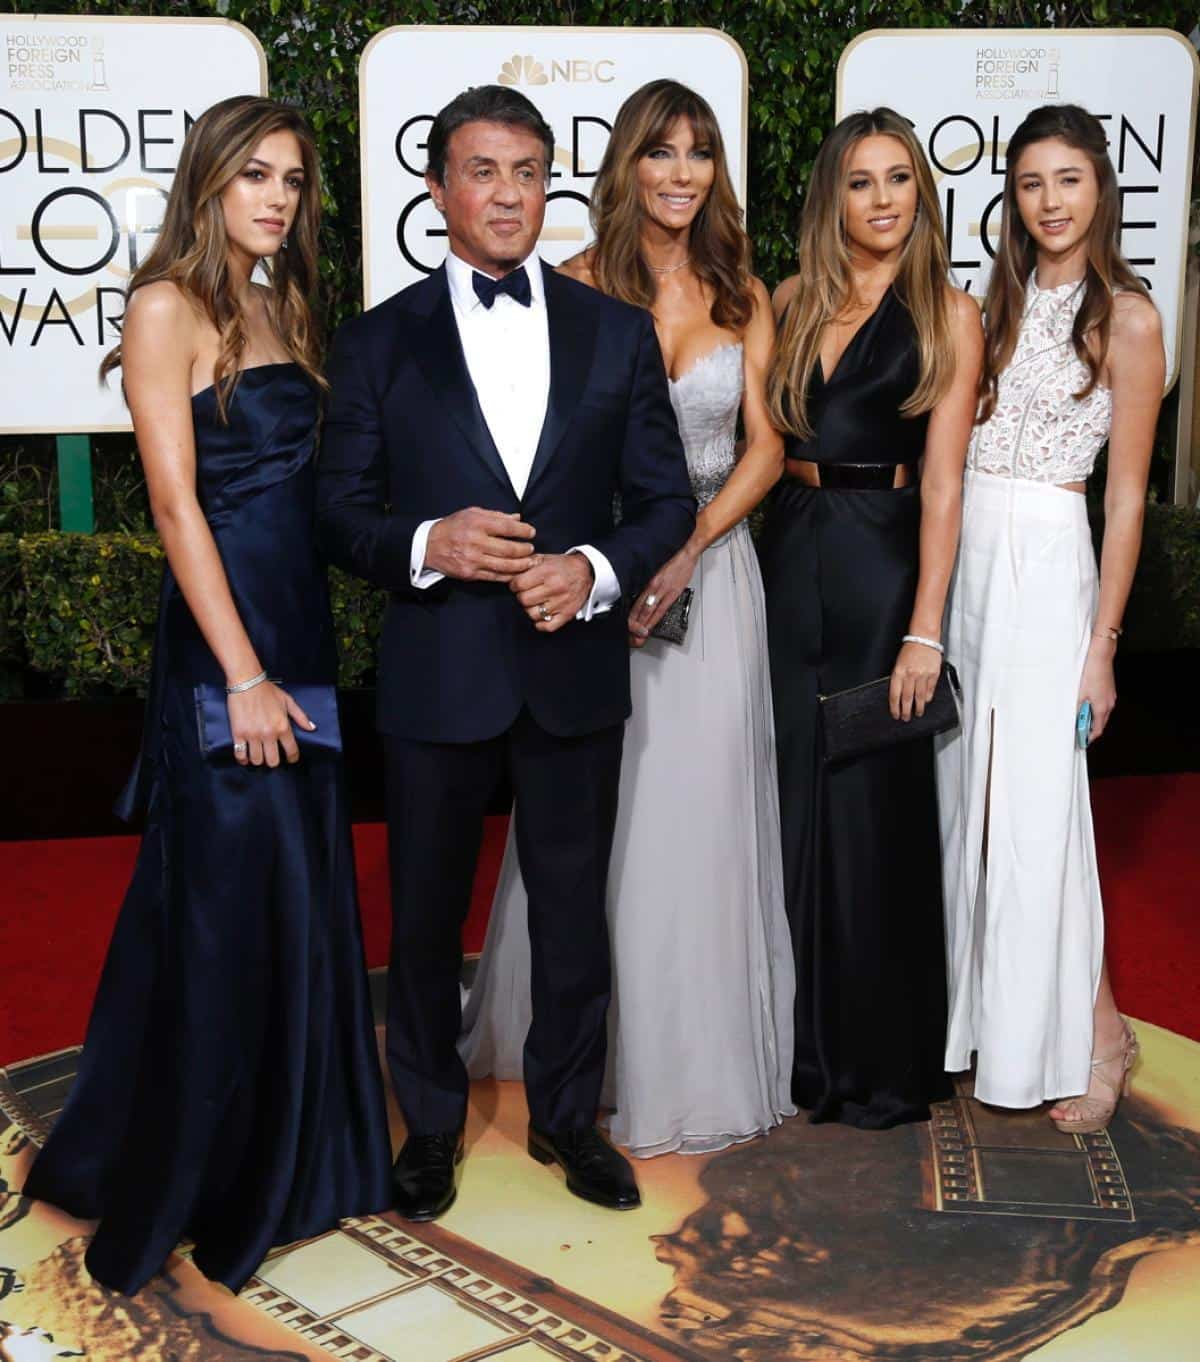 Golden Globe 2016: red carpet